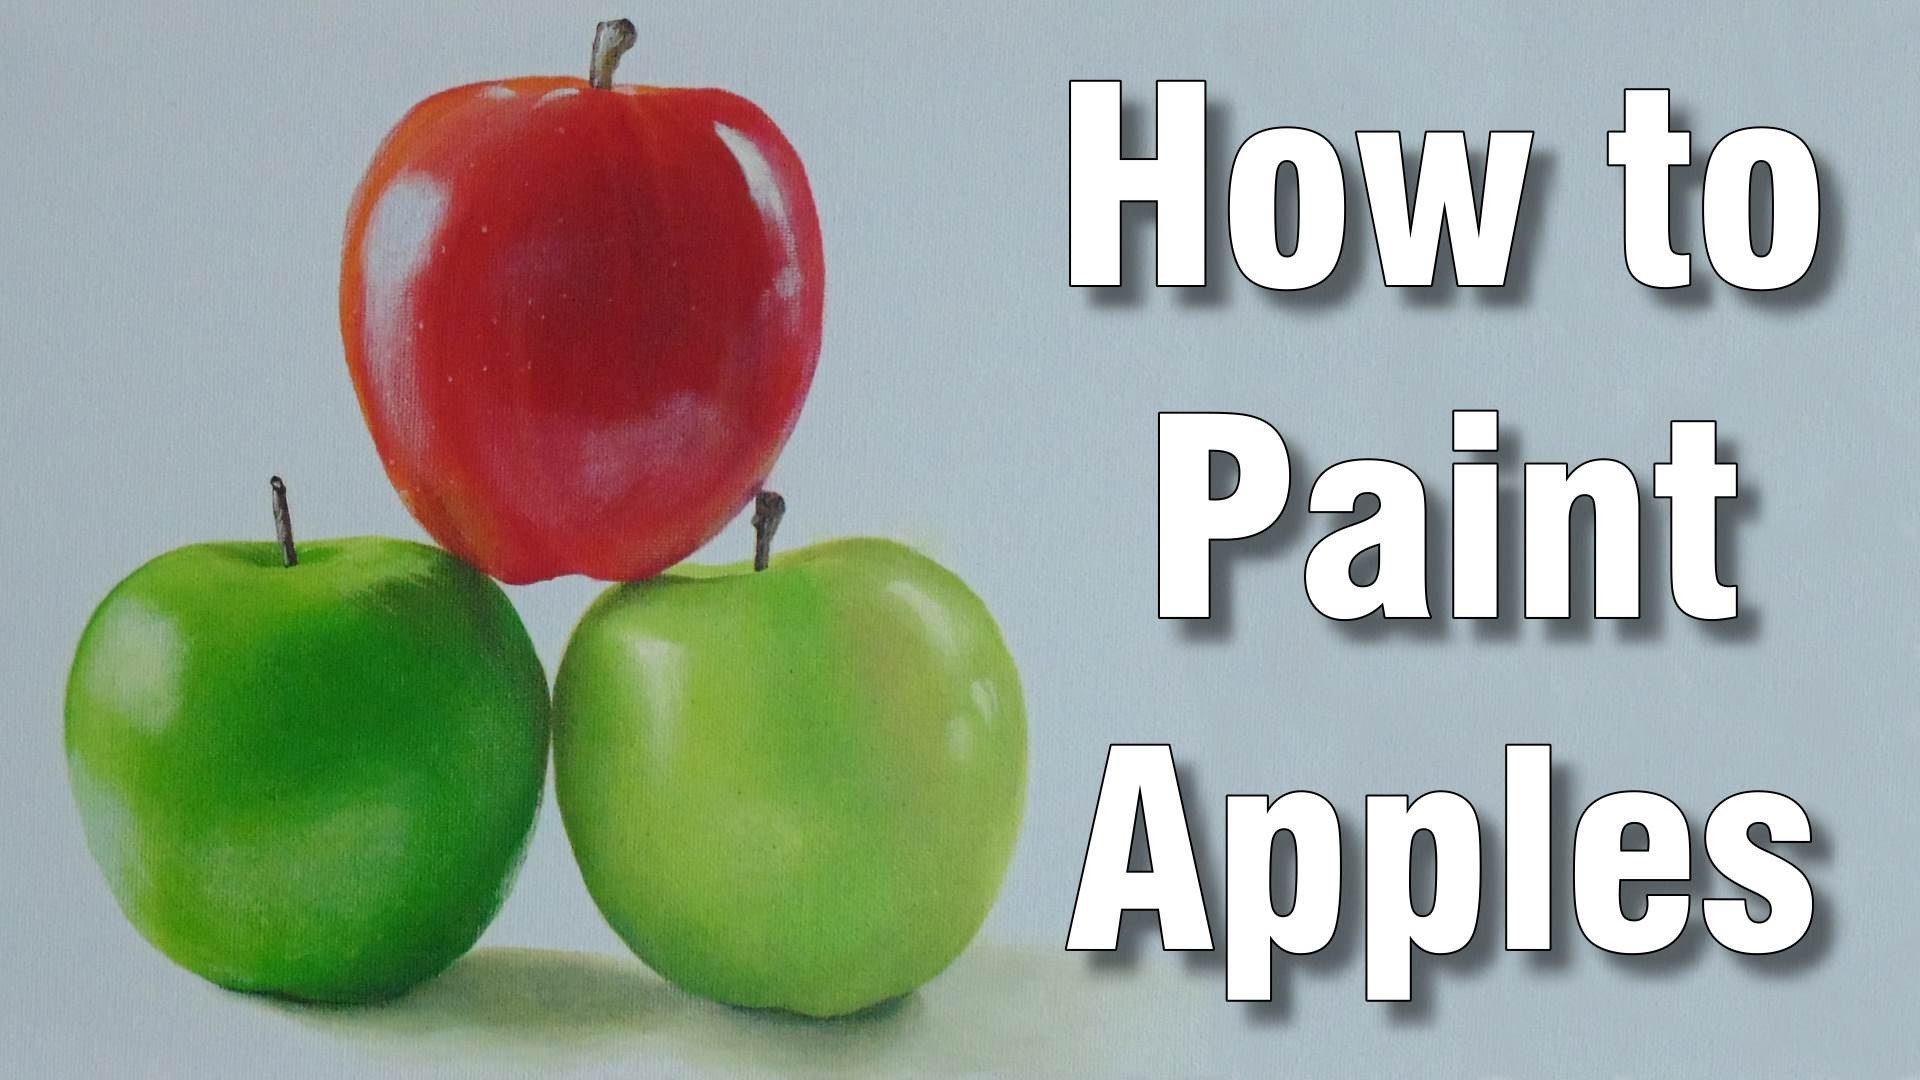 How to paint apples in acrylic time lapse painting tutorial